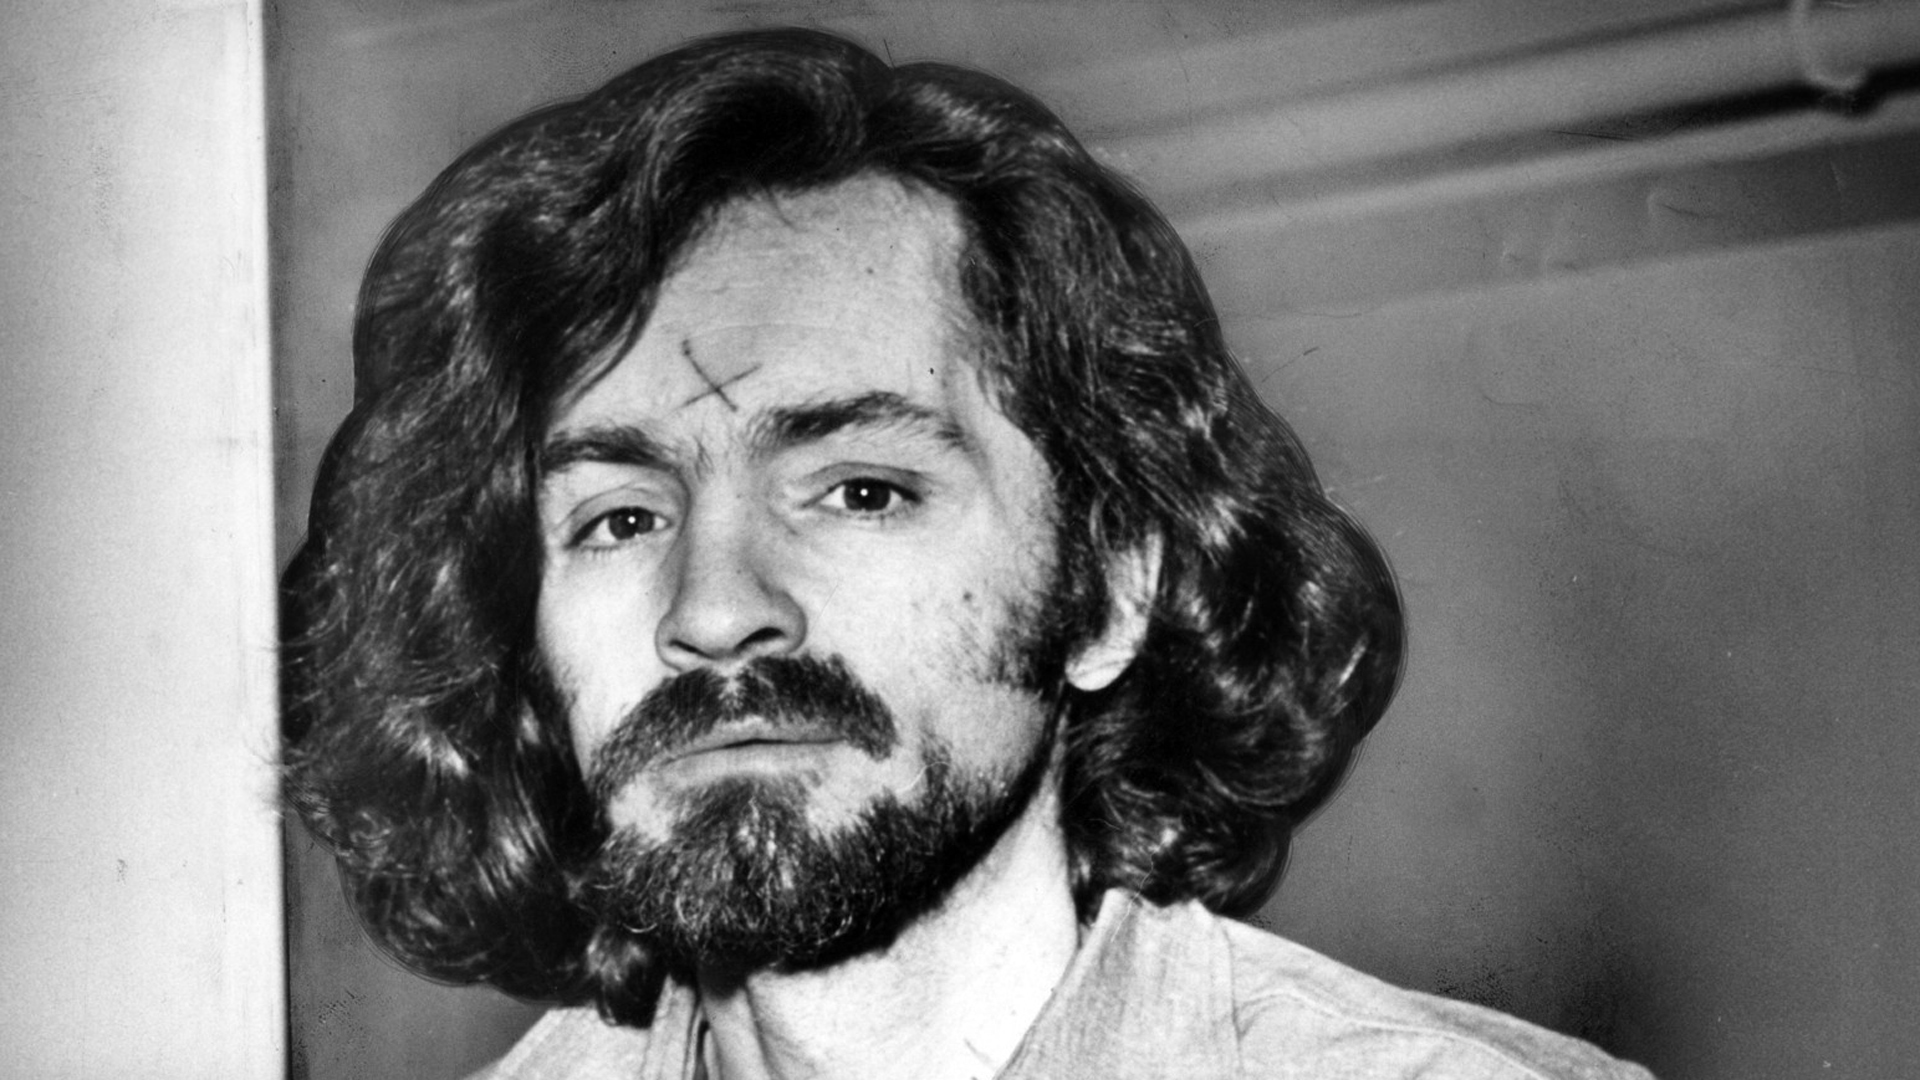 Charles Manson is seen en route to a Los Angeles courtroom in December 1970. (Credit: John Malmin / Los Angeles Times)